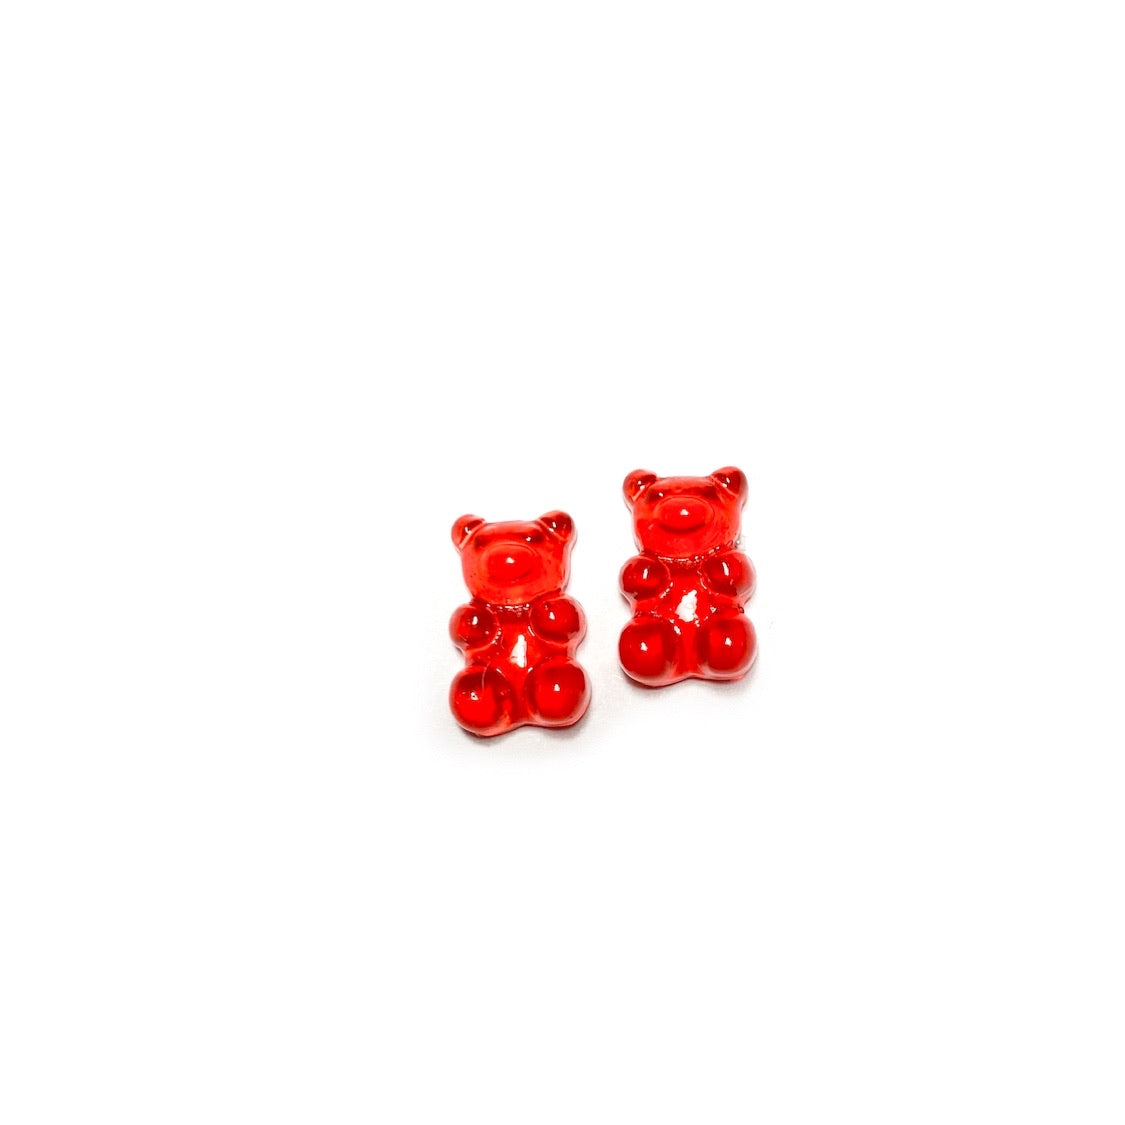 Red Gummy Bears - 15mm Shaped Studs